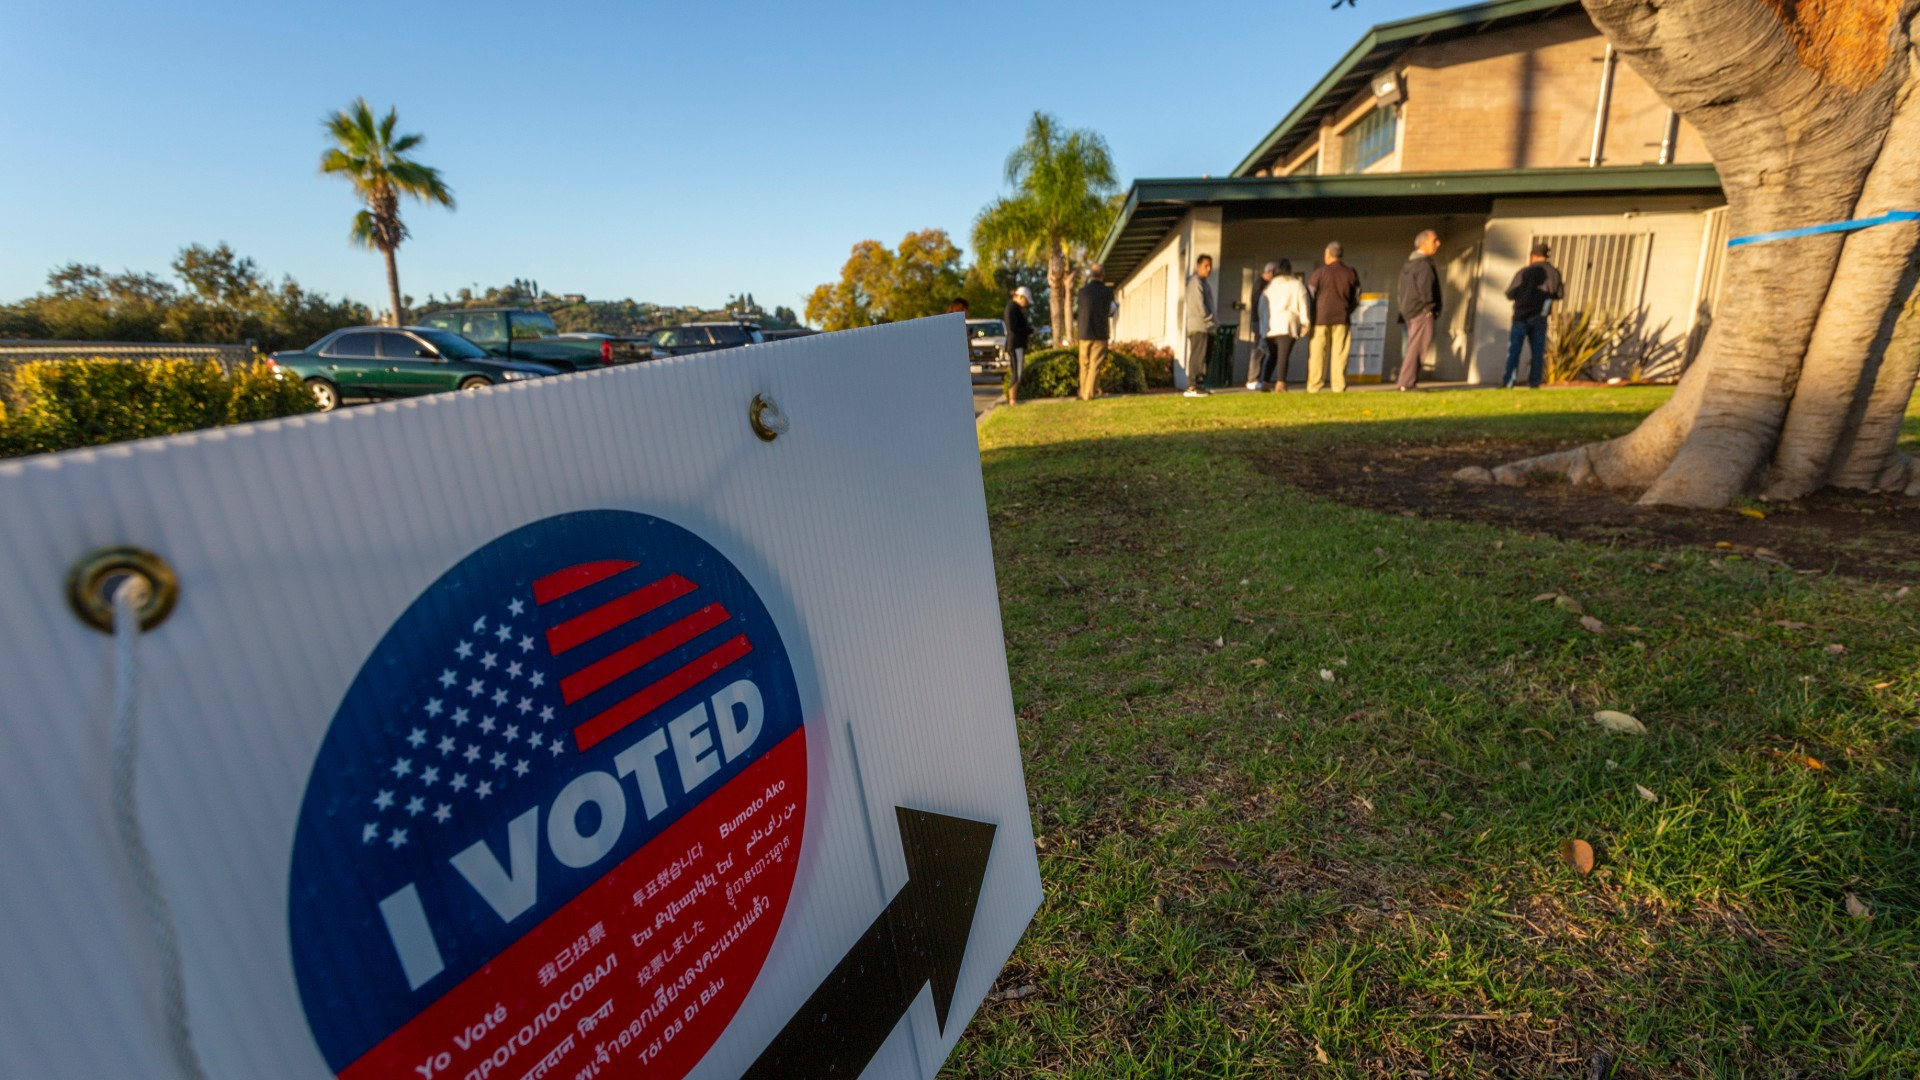 Voters wait for a voting center to open at Granada Park on March 3, 2020 in Alhambra, California. 1,357 Democratic delegates are at stake as voters cast their ballots in 14 states and American Samoa on what is known as Super Tuesday. (David McNew/Getty Images)